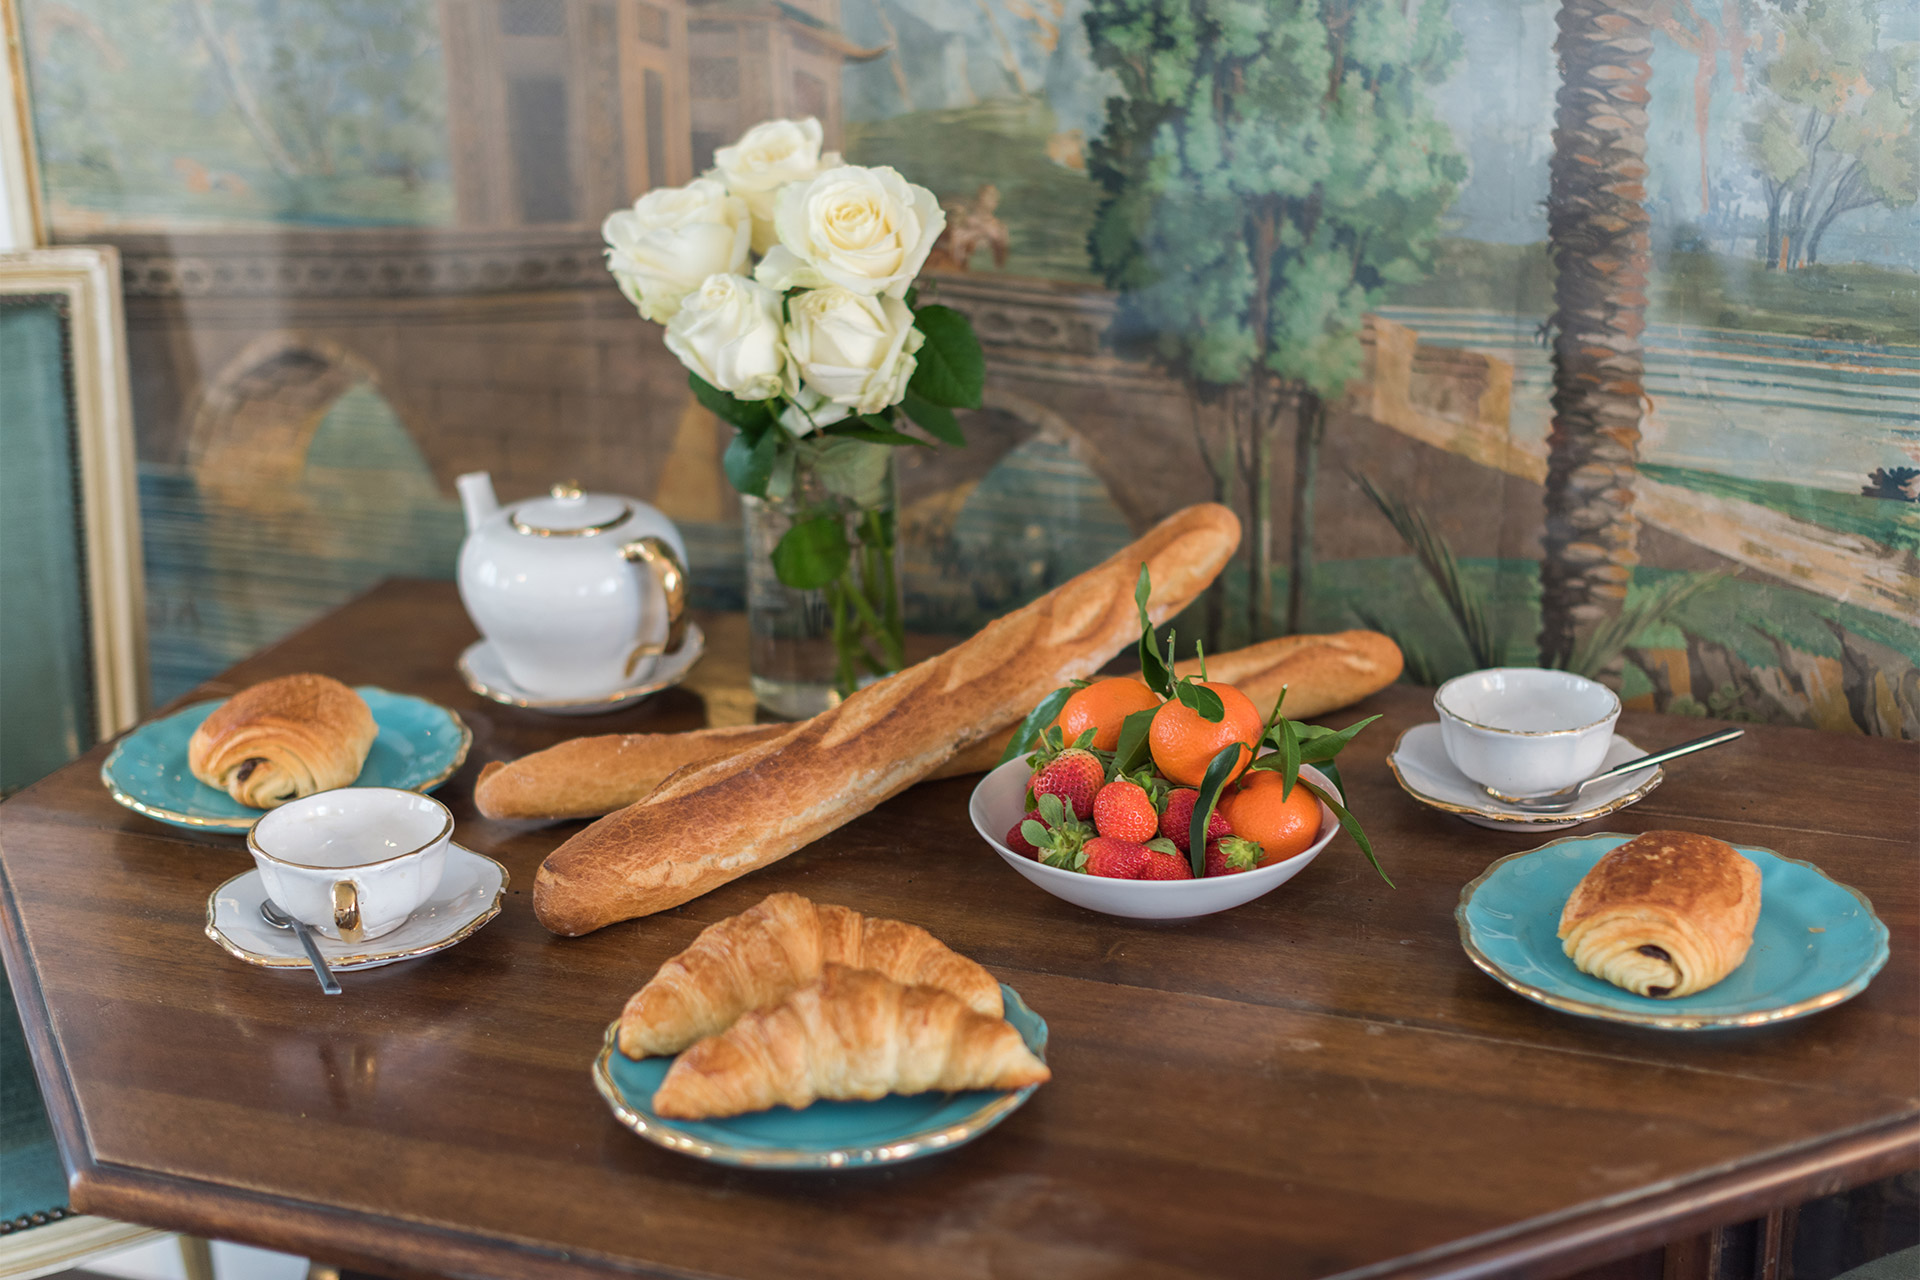 Find fabulous fresh ingredients nearby for breakfast at the Jacquere vacation rental offered by Paris Perfect